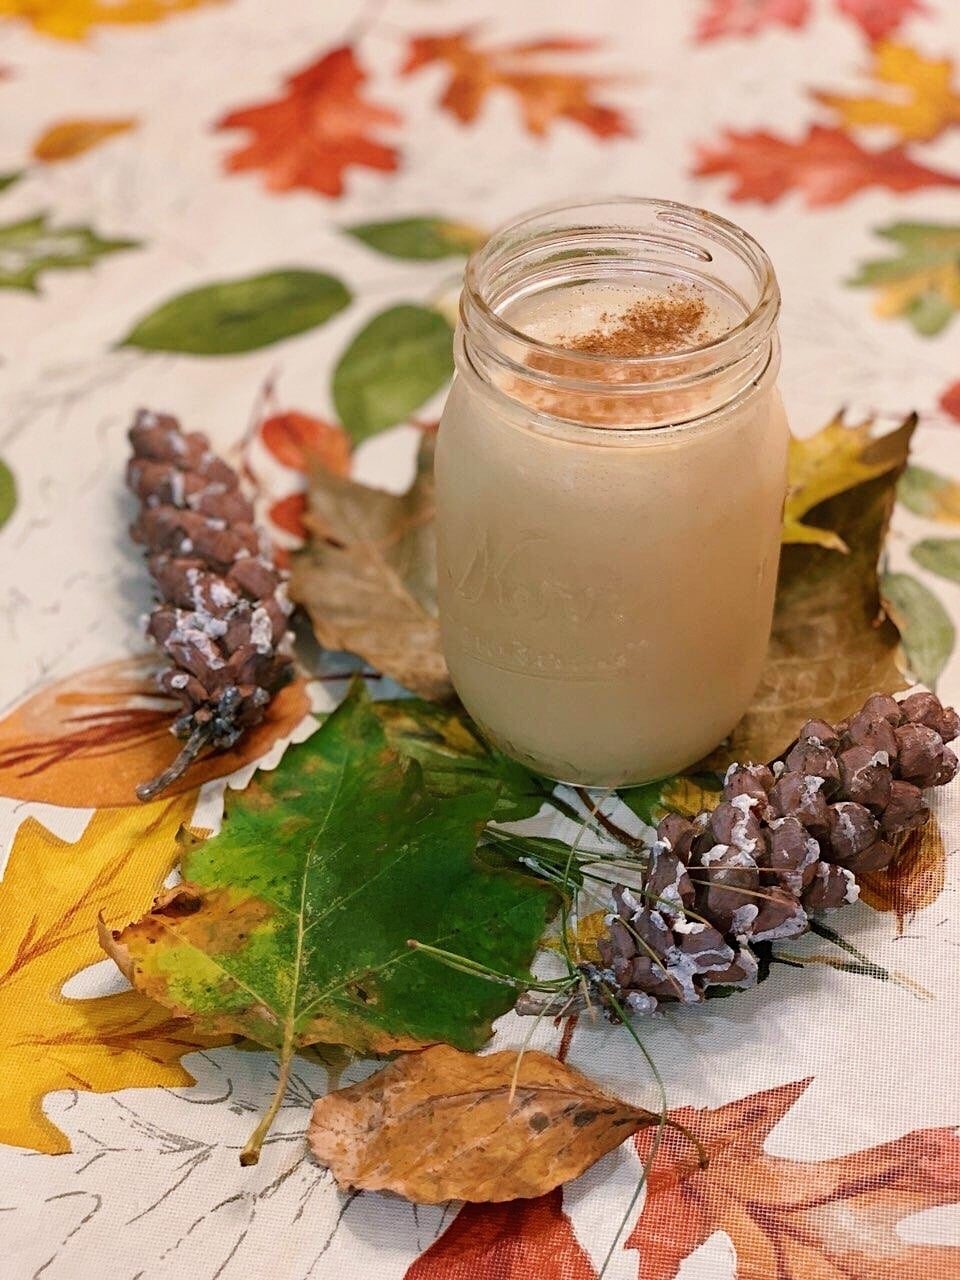 Protein shake recipe for fall